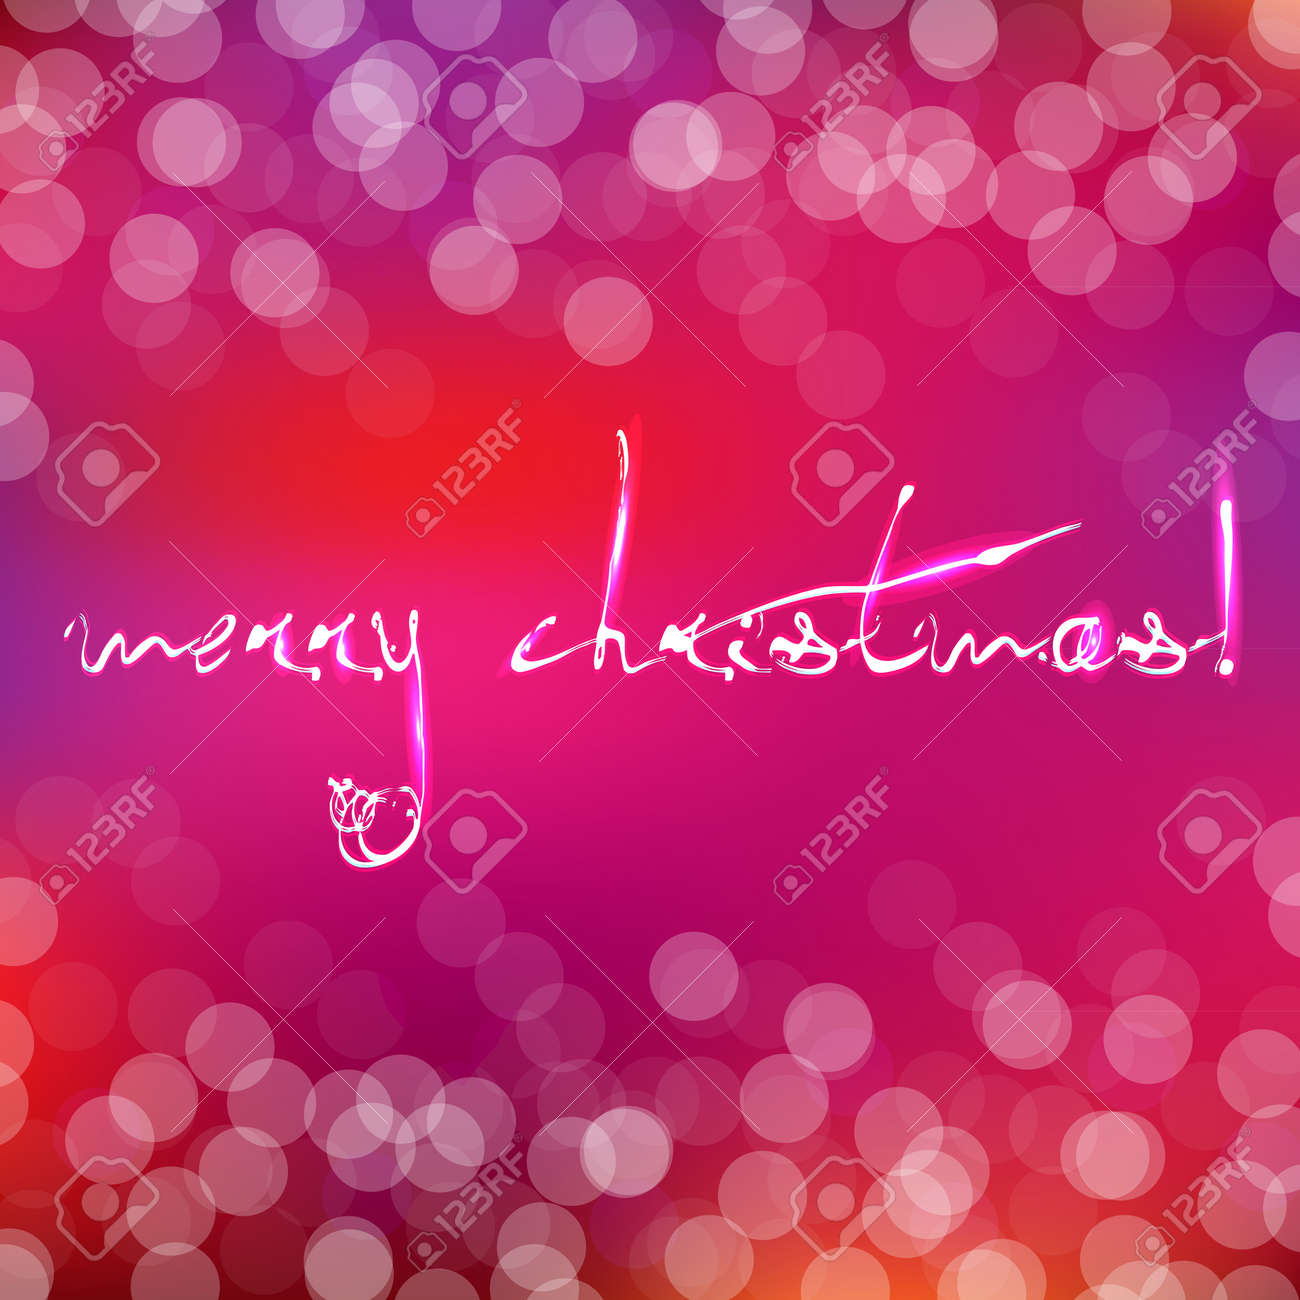 Pink Christmas Card With Bokeh, Illustration Stock Vector - 15792849